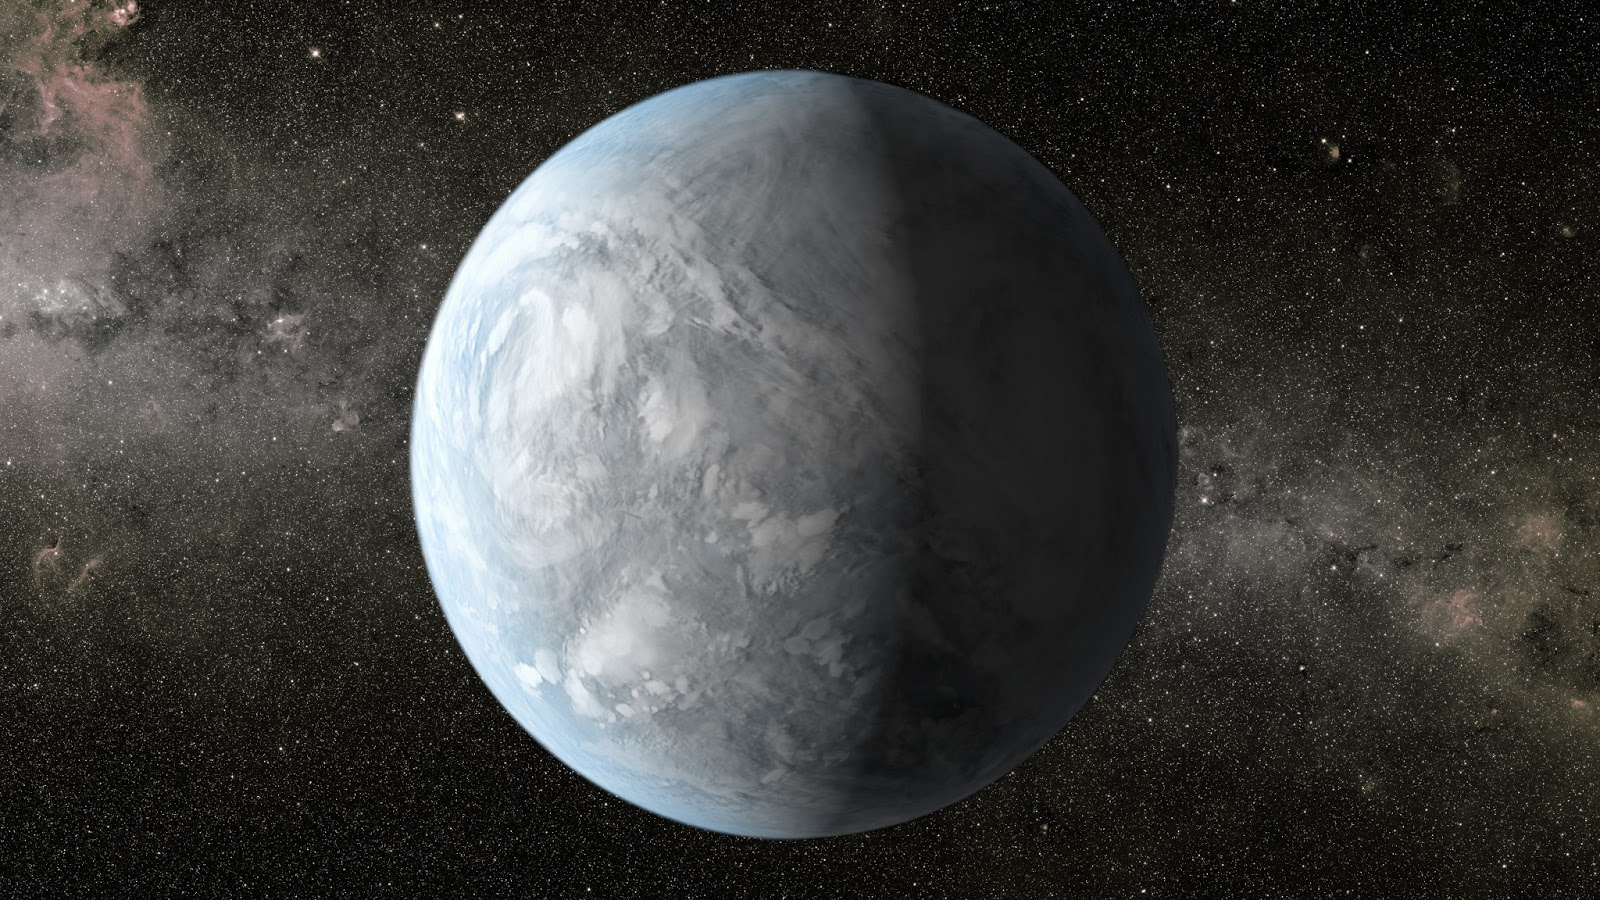 Gmail planets theme - Kepler 62e An Artist S Concept Of The Most Earth Like Planet Found To Date Image Credit Nasa Ames Jpl Caltech